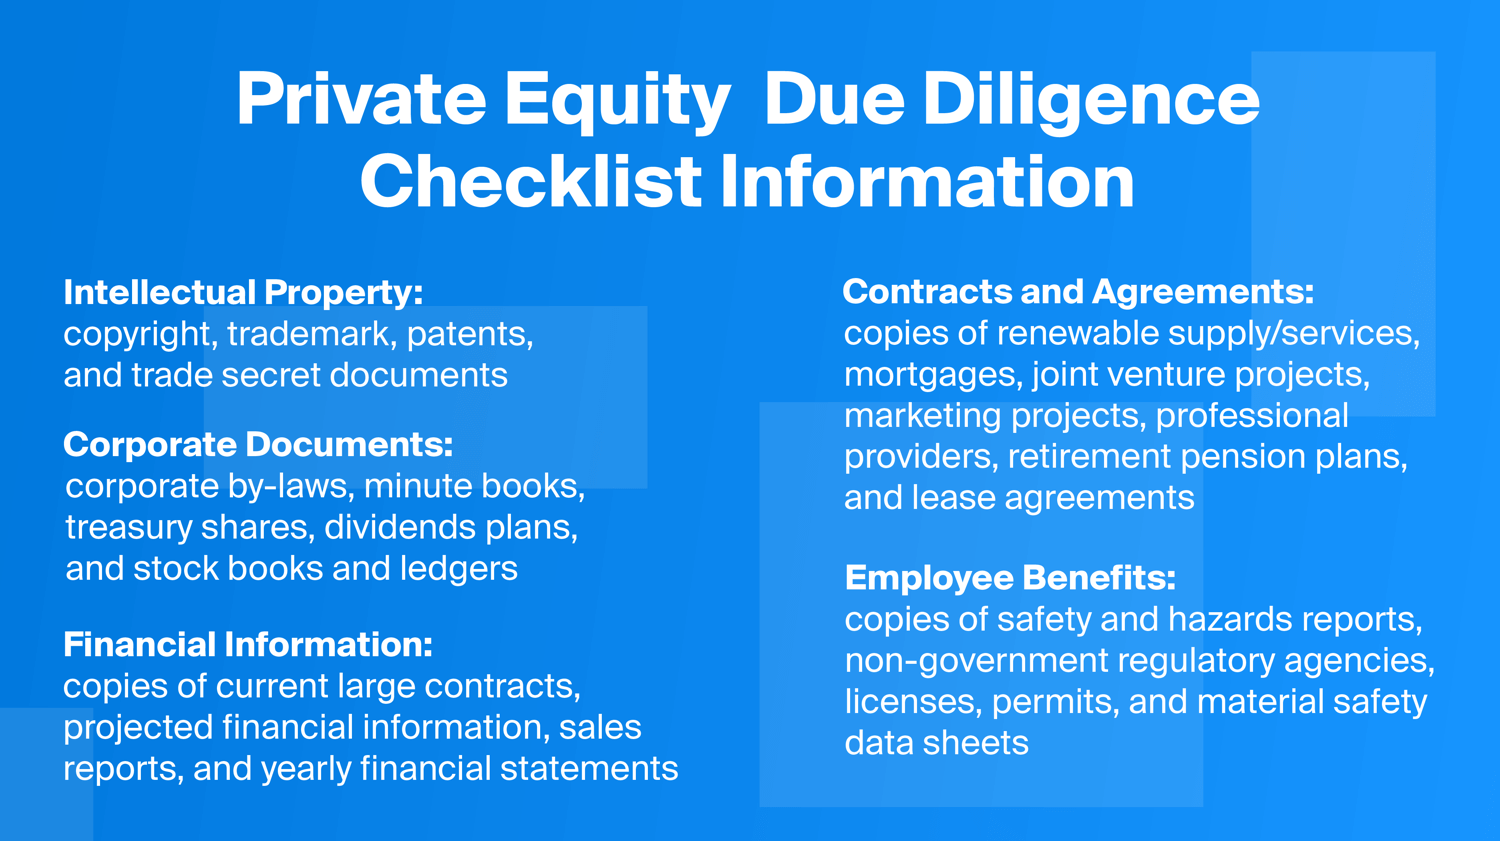 Private Equity Due Diligence Checklist